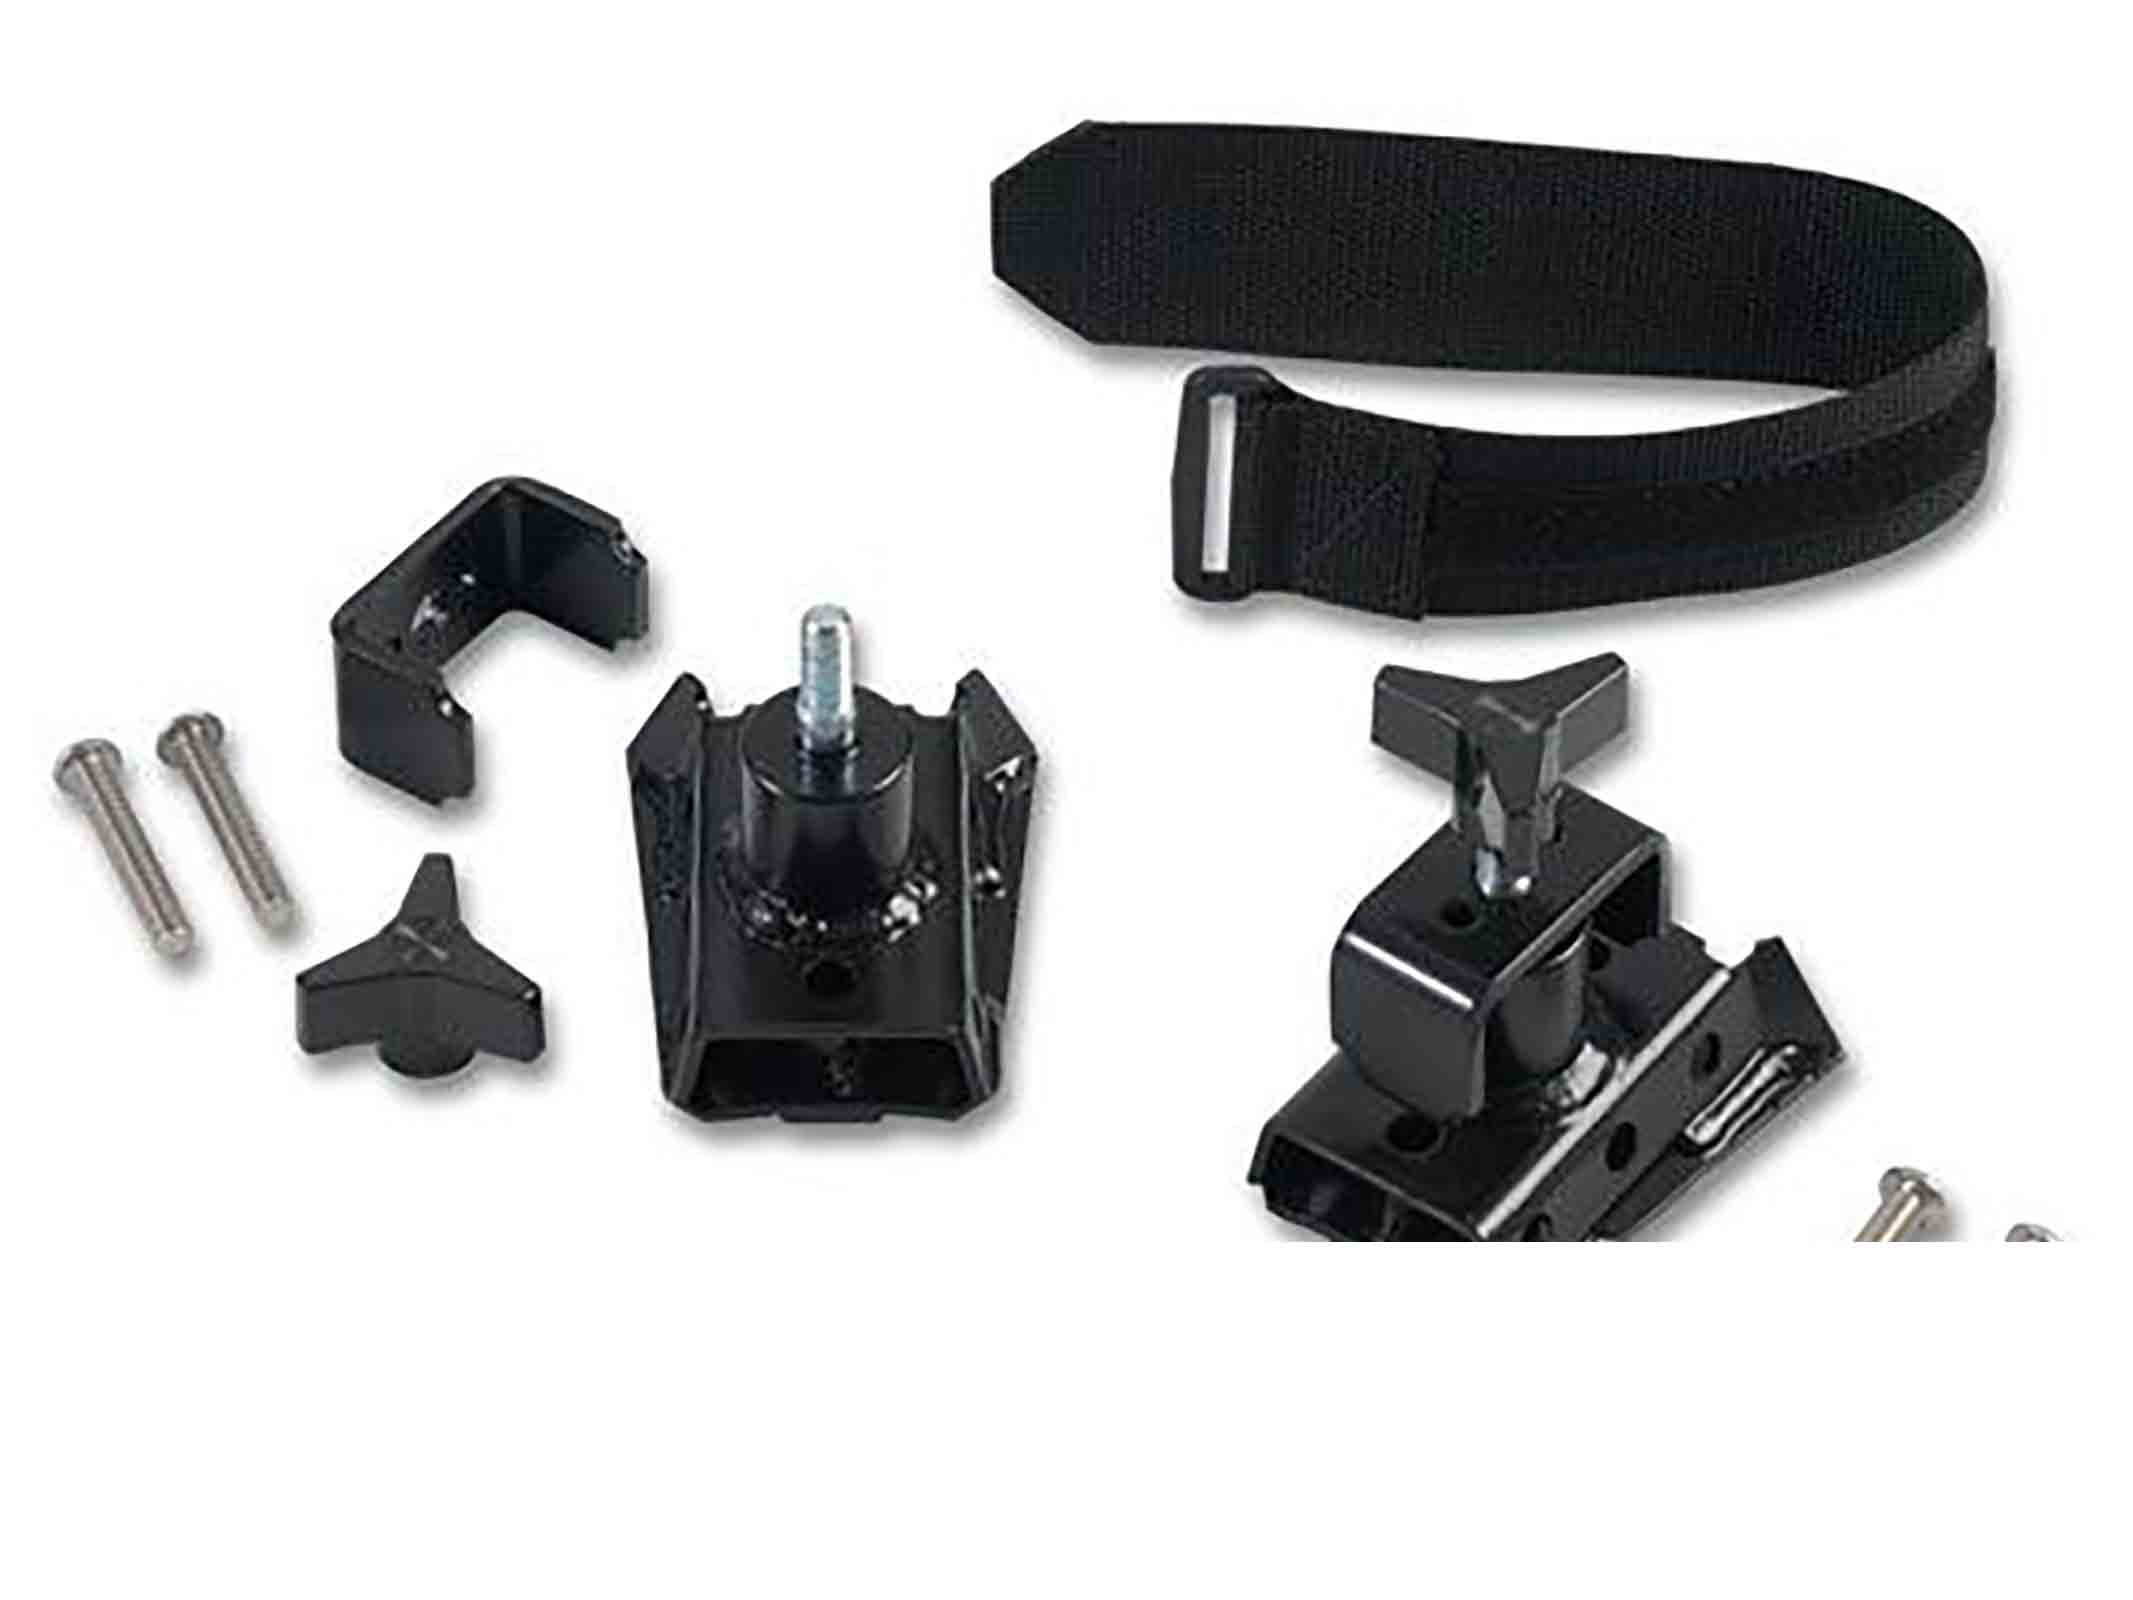 Cofano motore hinge support wrangler jk 07 17 for highlift ricambi jeep